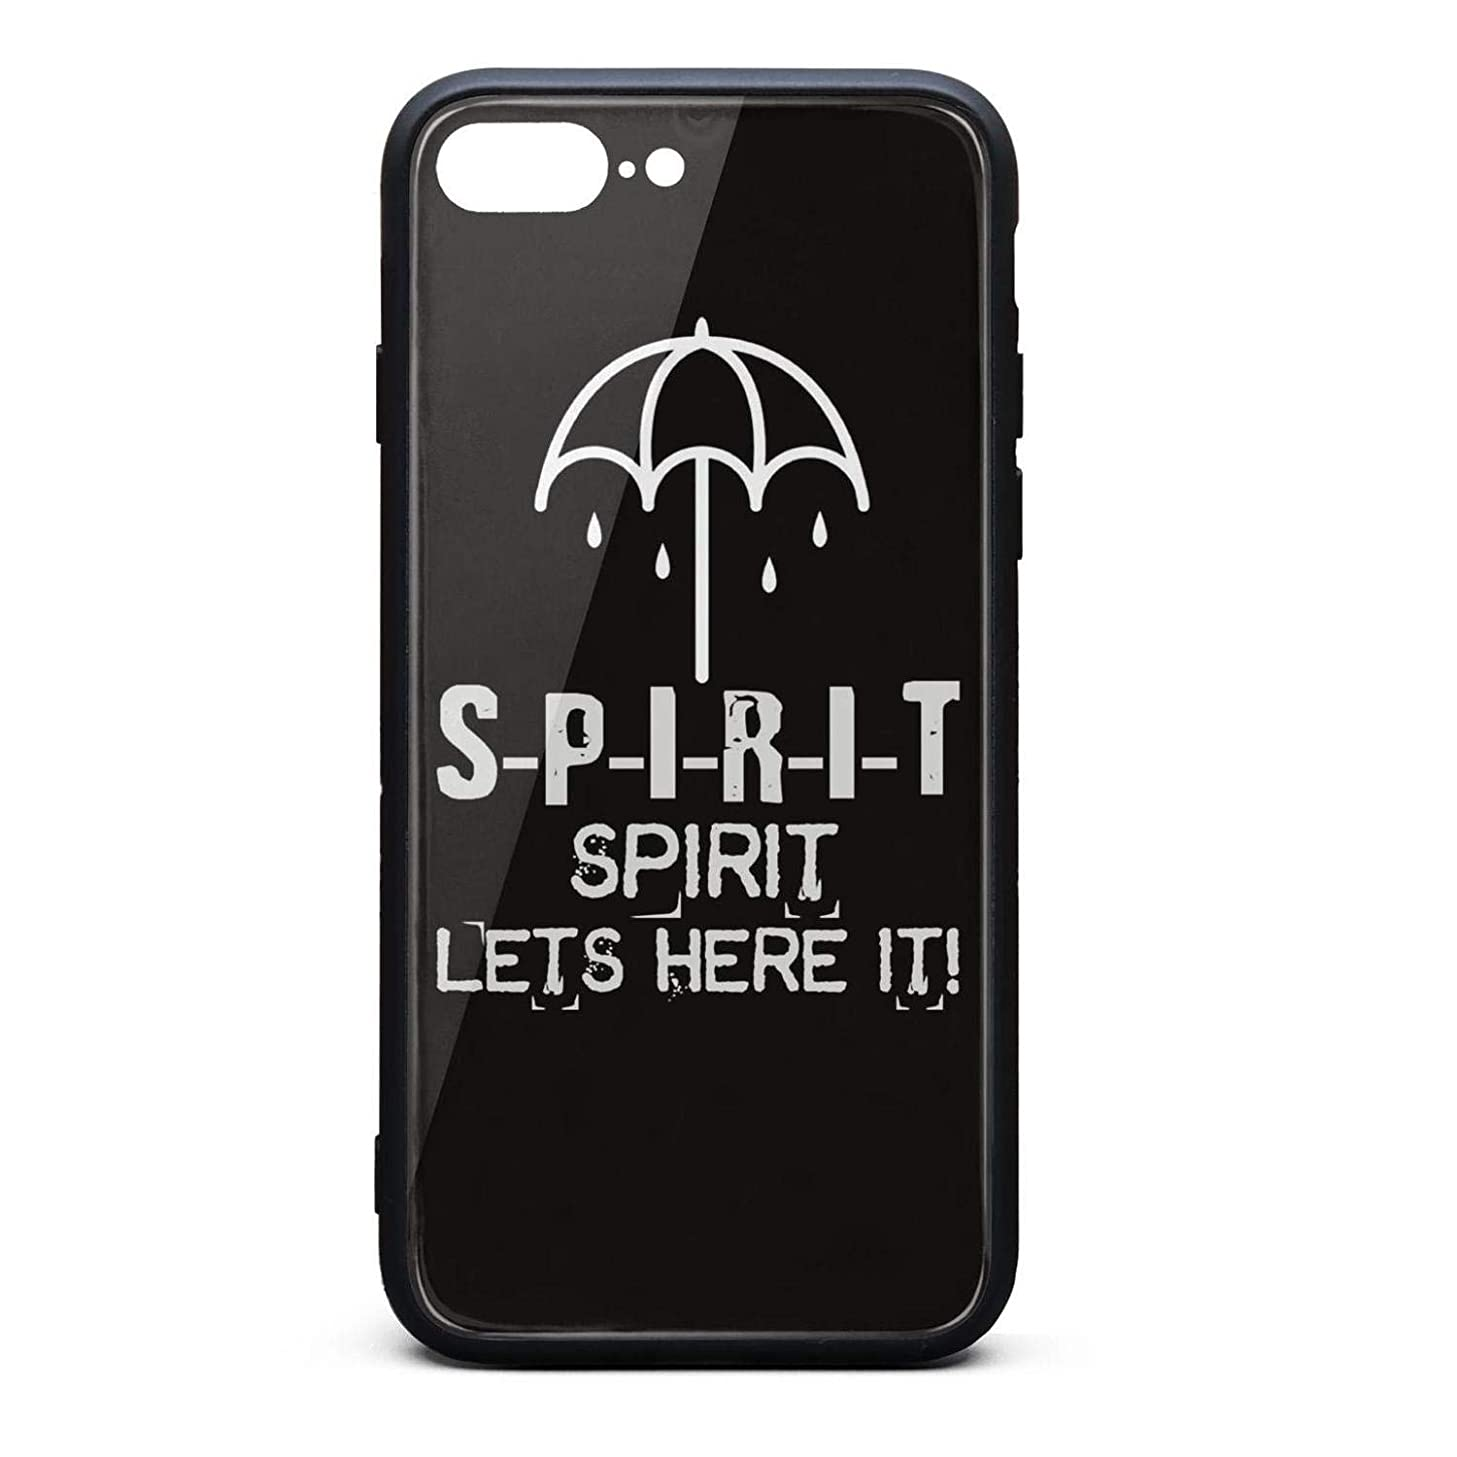 Spirit Umbrella Bring Me The Horizon Unique iPhone Cases Protective Cover for Apple iPhone 8 Plus Case Reinforced Corner TPU Bumper Cushion Scratch Resistant Hybrid Rigid Clear Back